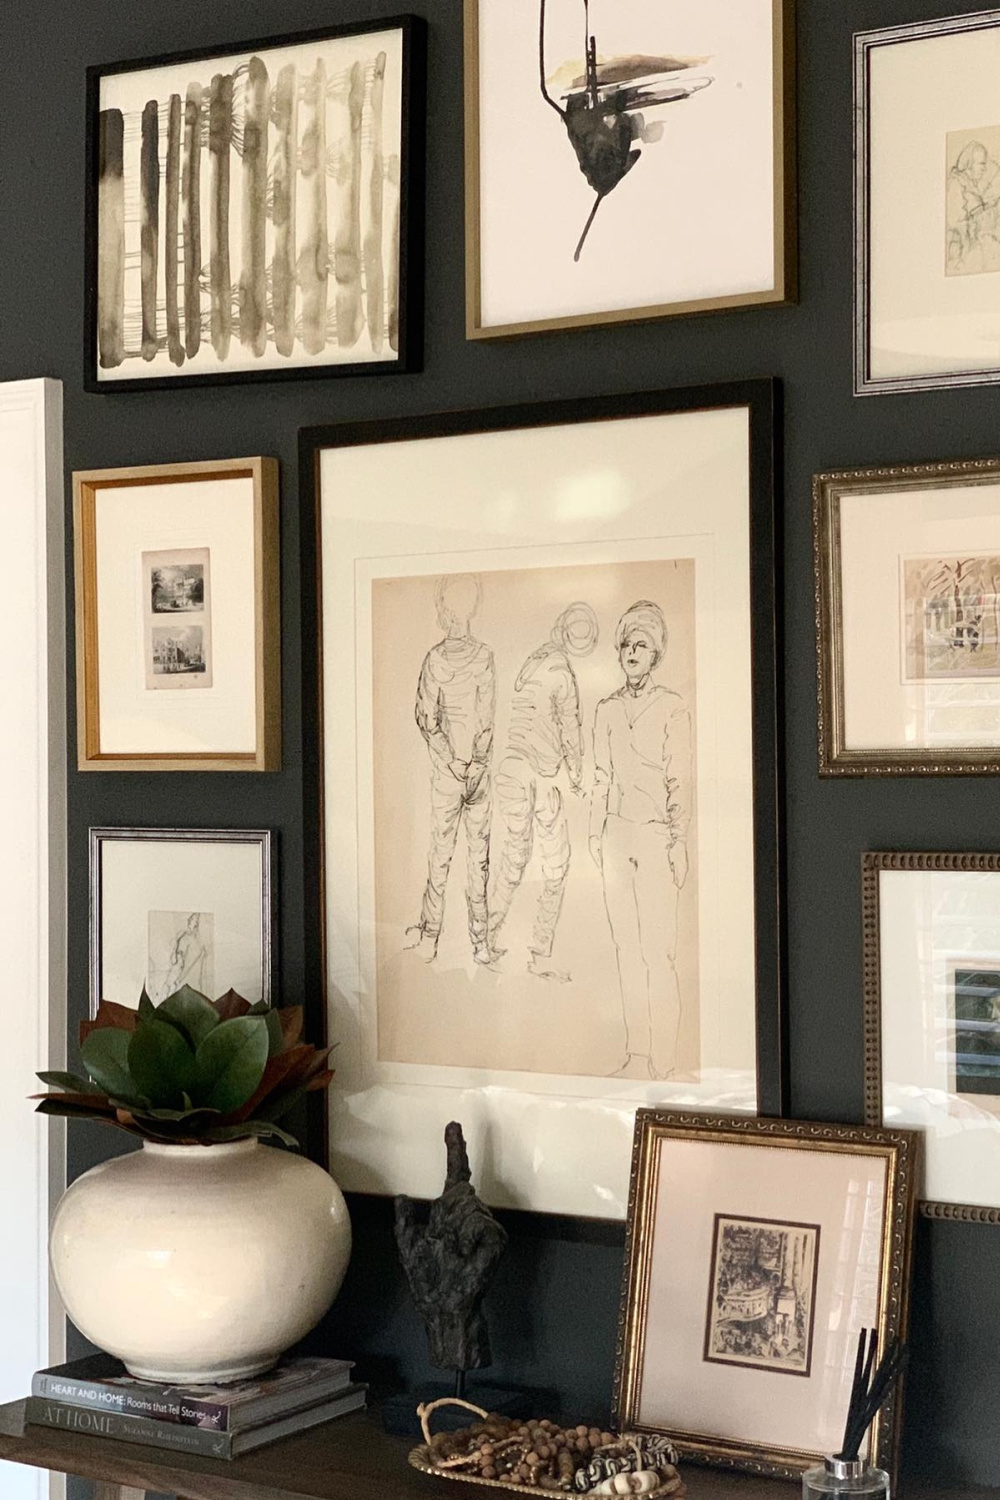 Gorgeous gallery wall painted Benjamin Moore Iron Mountain provides a lovely contrast with framed art with white mats - Sherry Hart. #benjaminmoore #ironmountain #paintcolors